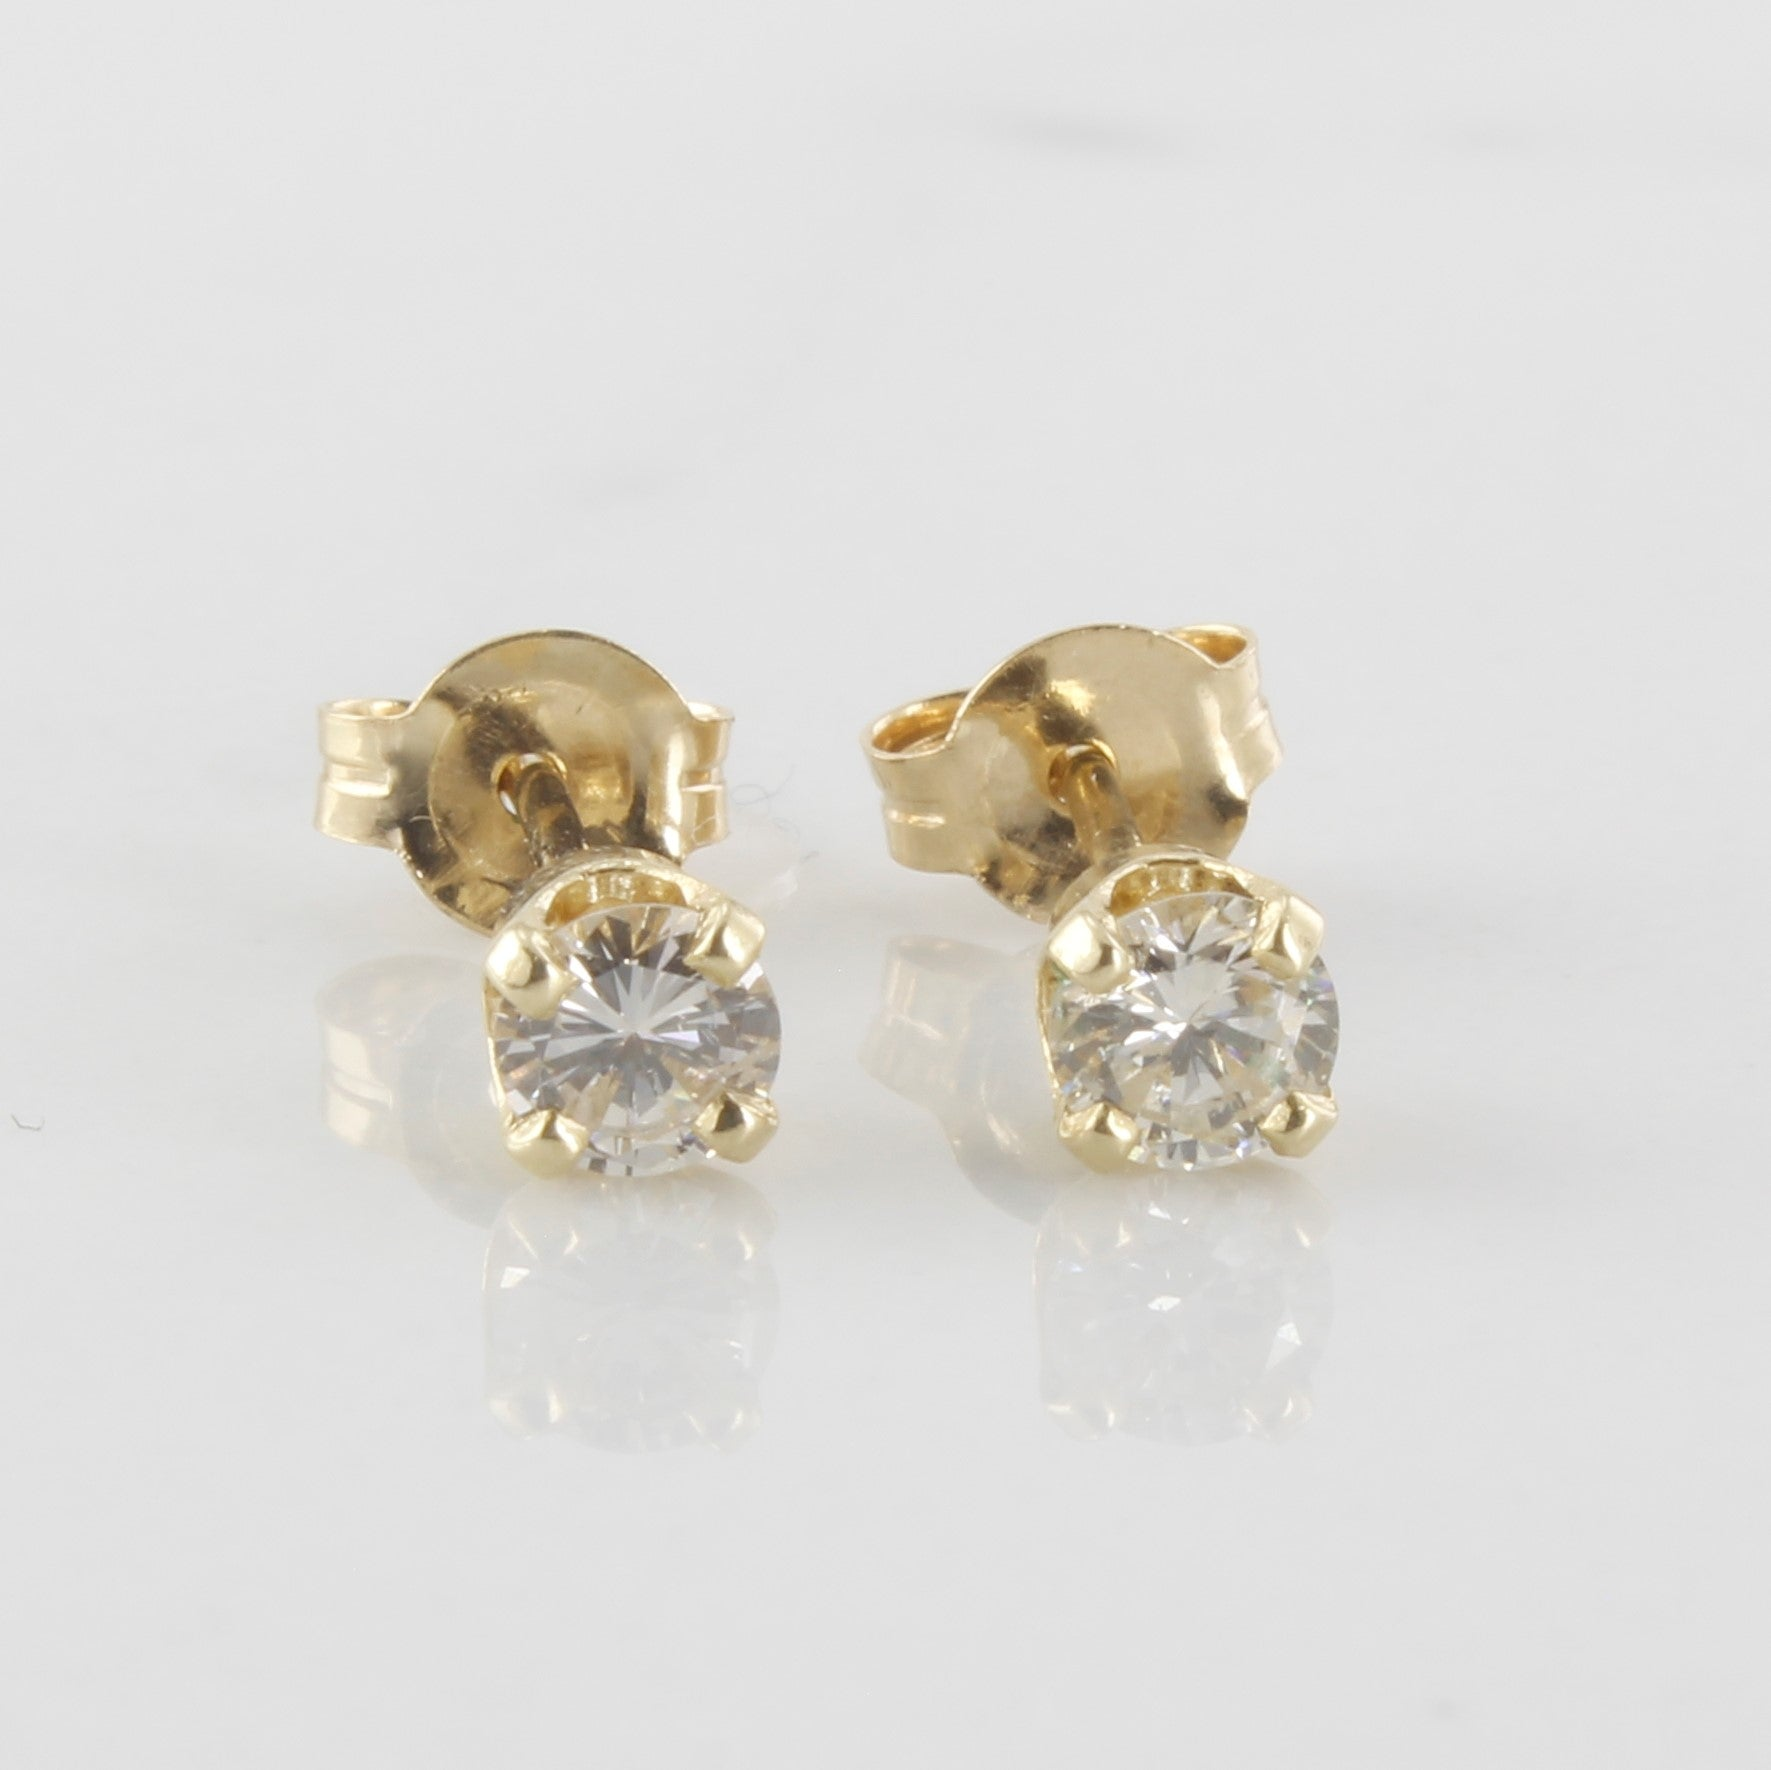 Diamond Stud Earrings | 0.32 ctw |